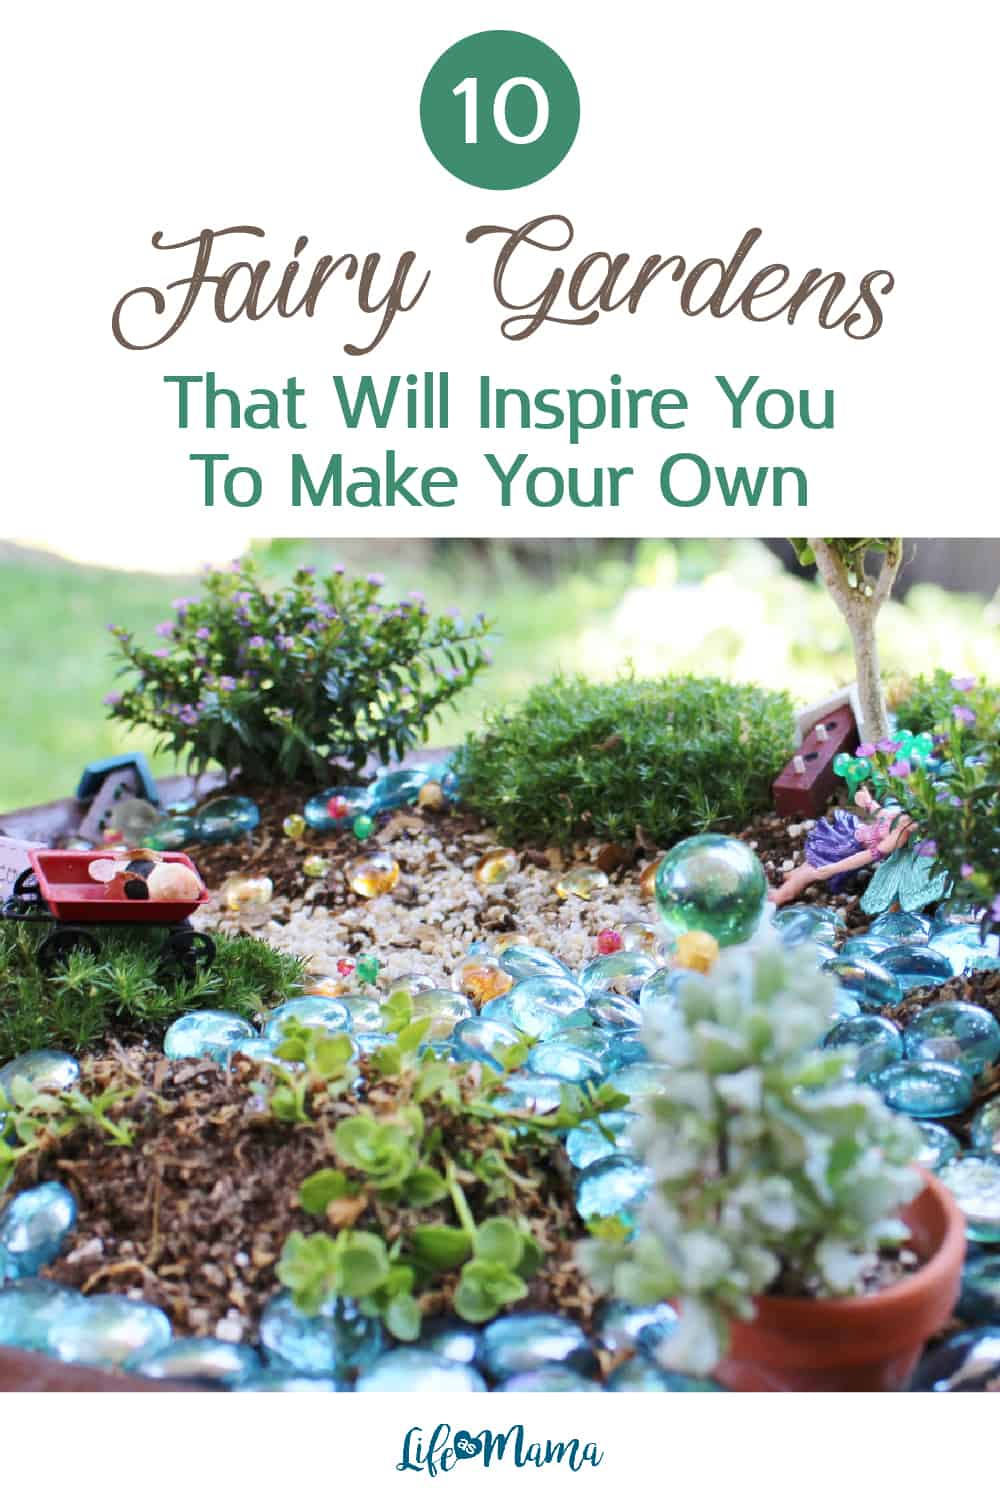 fairy gardens to inspire you to make your own